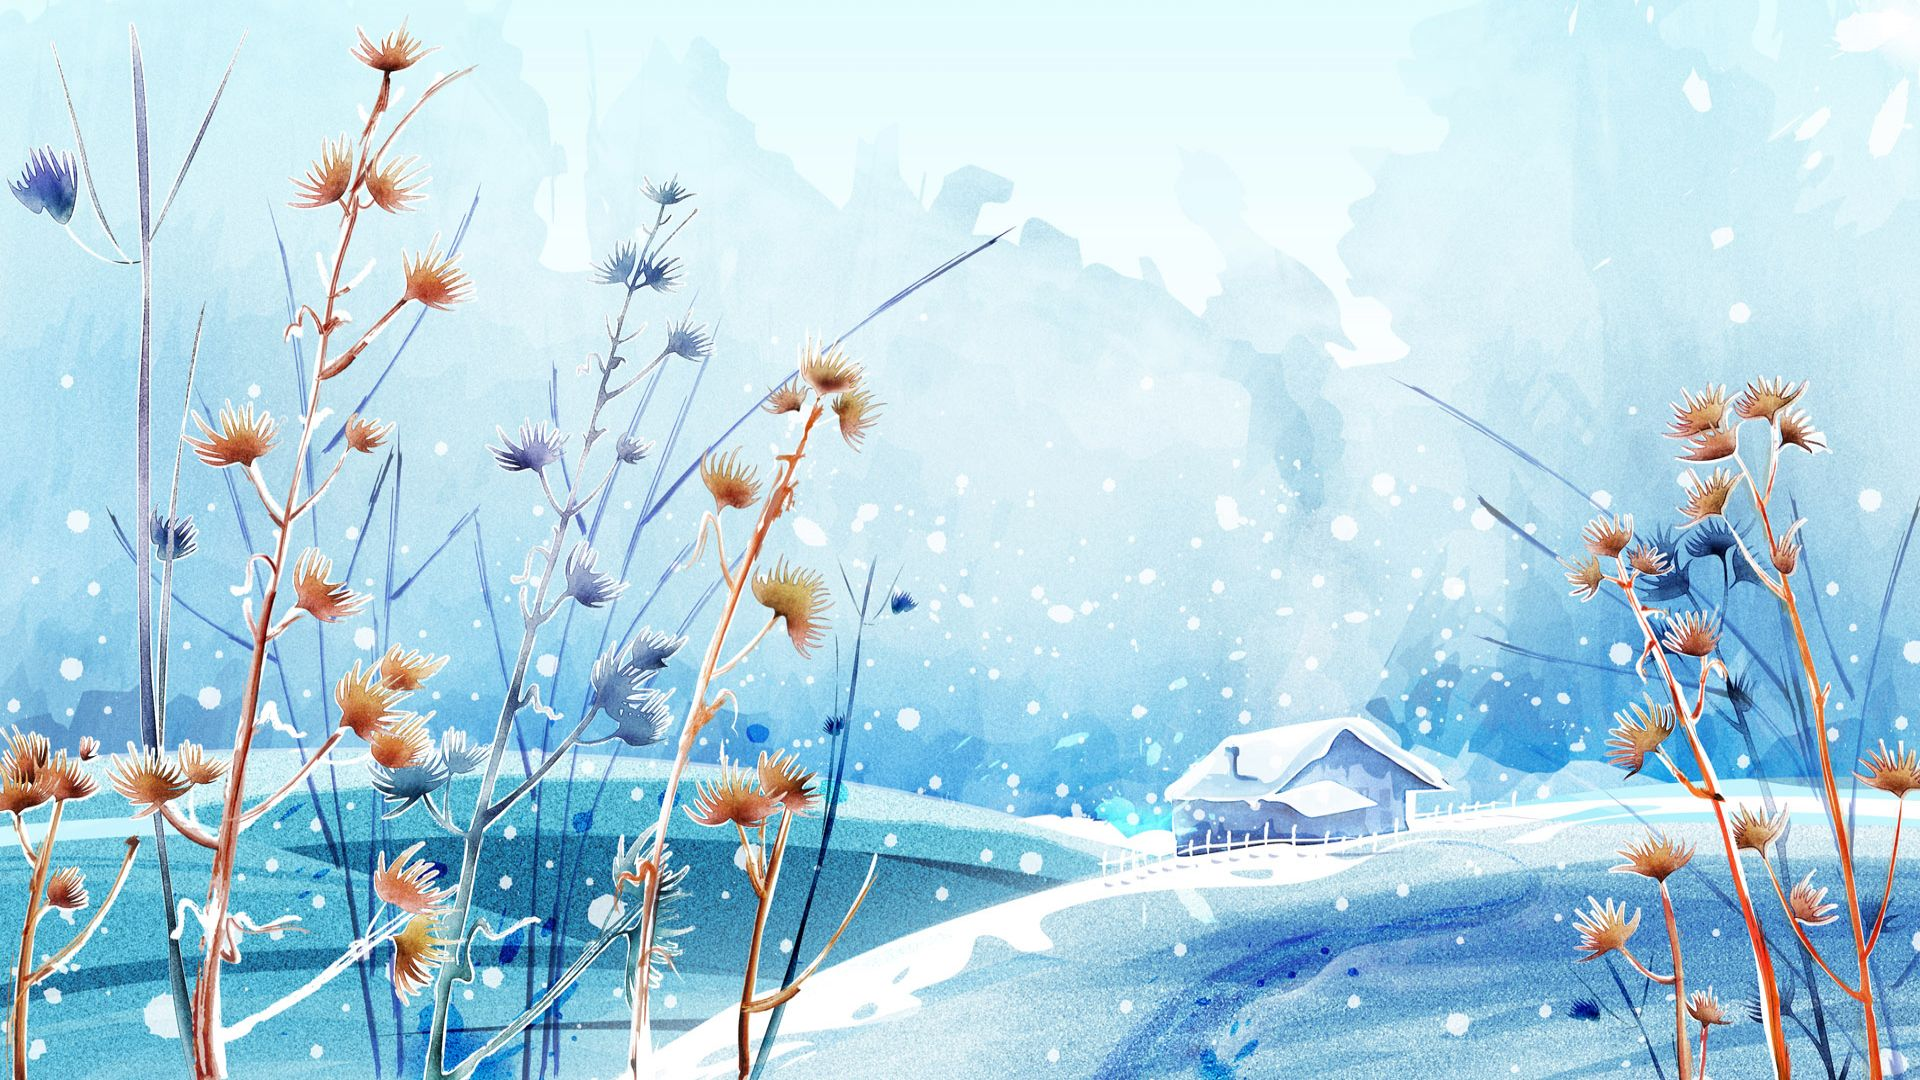 desktop winter wallpaper   wwwwallpapers in hdcom 1920x1080